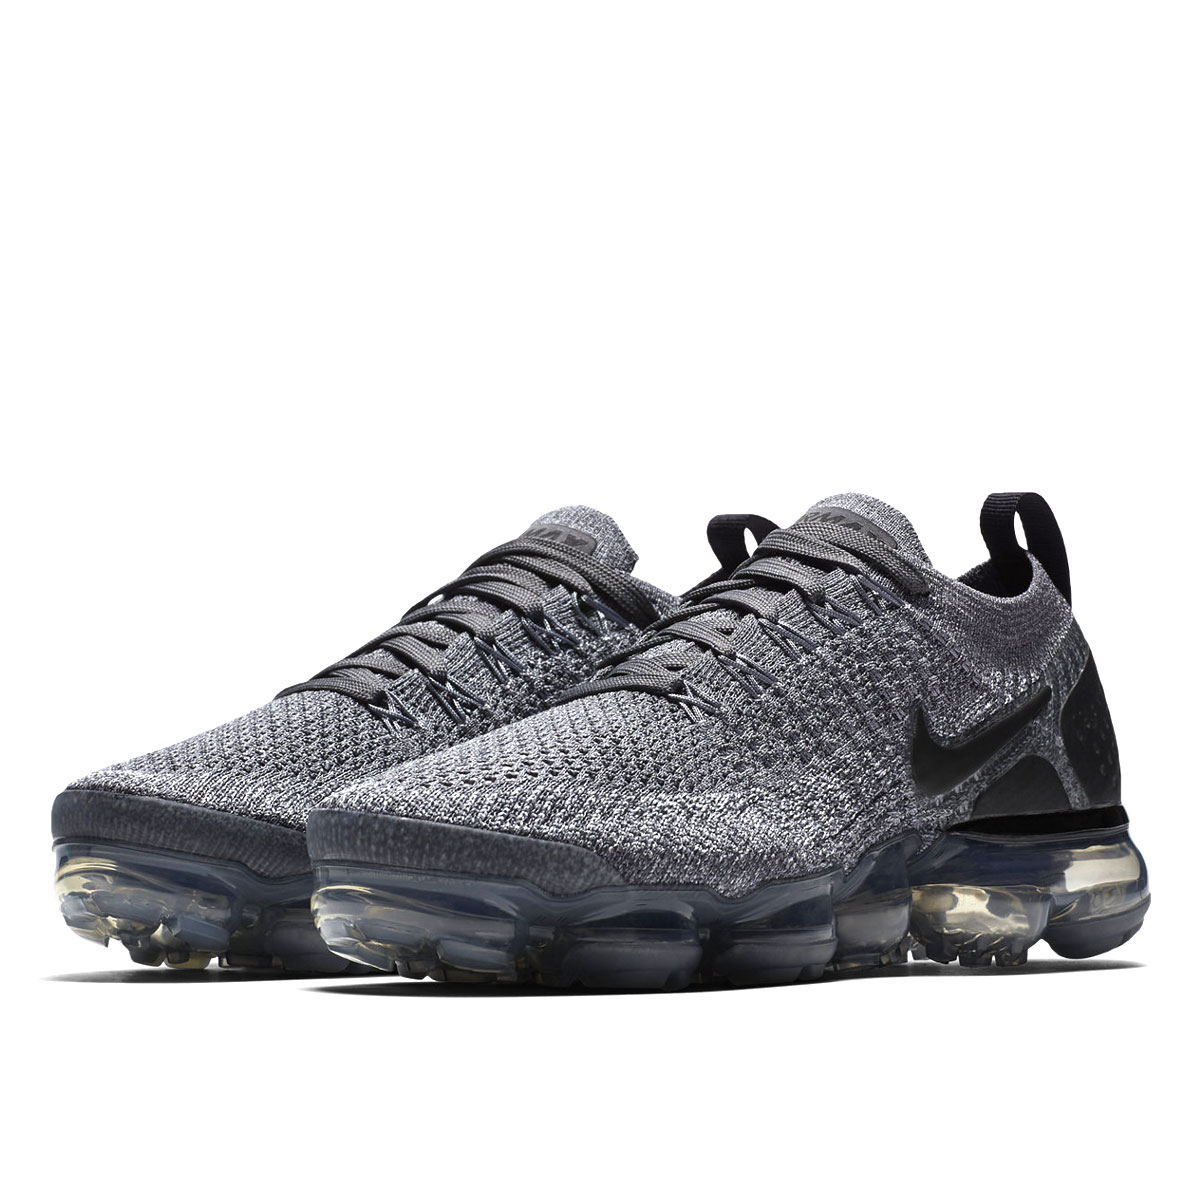 detailed pictures 6e31a db2e9 NIKE WMNS AIR VAPORMAX FLYKNIT 2 Nike women vapor max fried food knit DARK  GREY/WOLF GREY 942,843-002